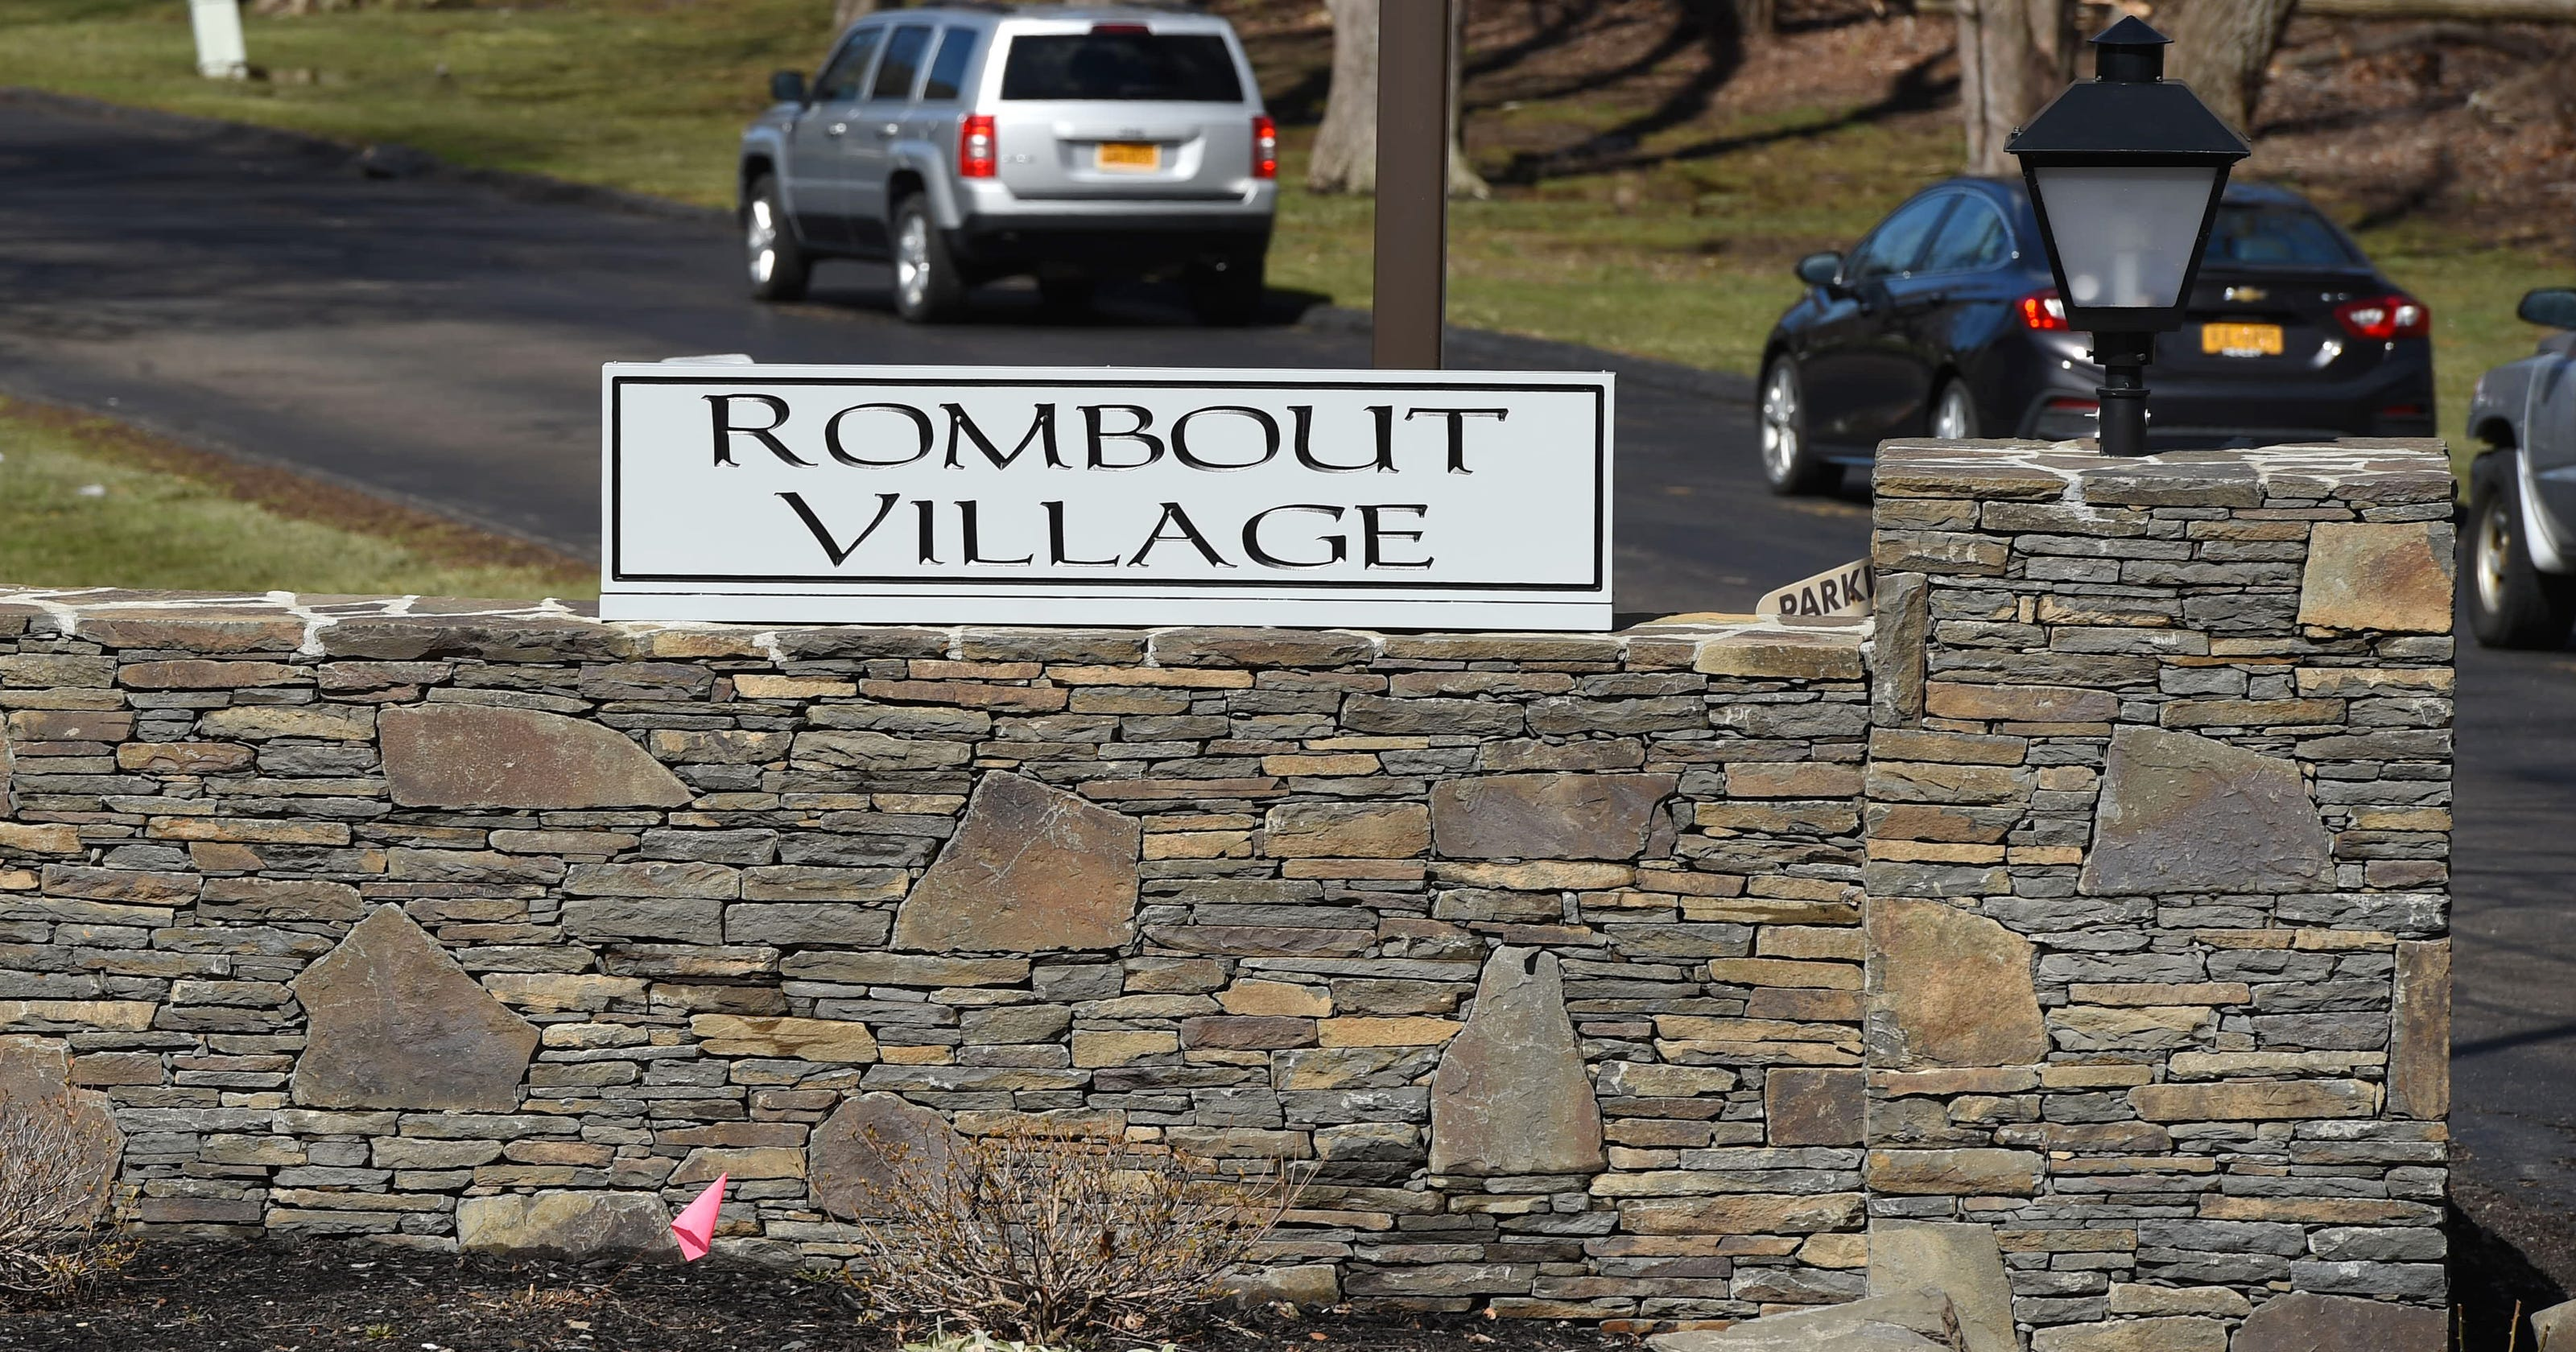 Co-op conflicts: Lawsuits challenge Rombout Village fines